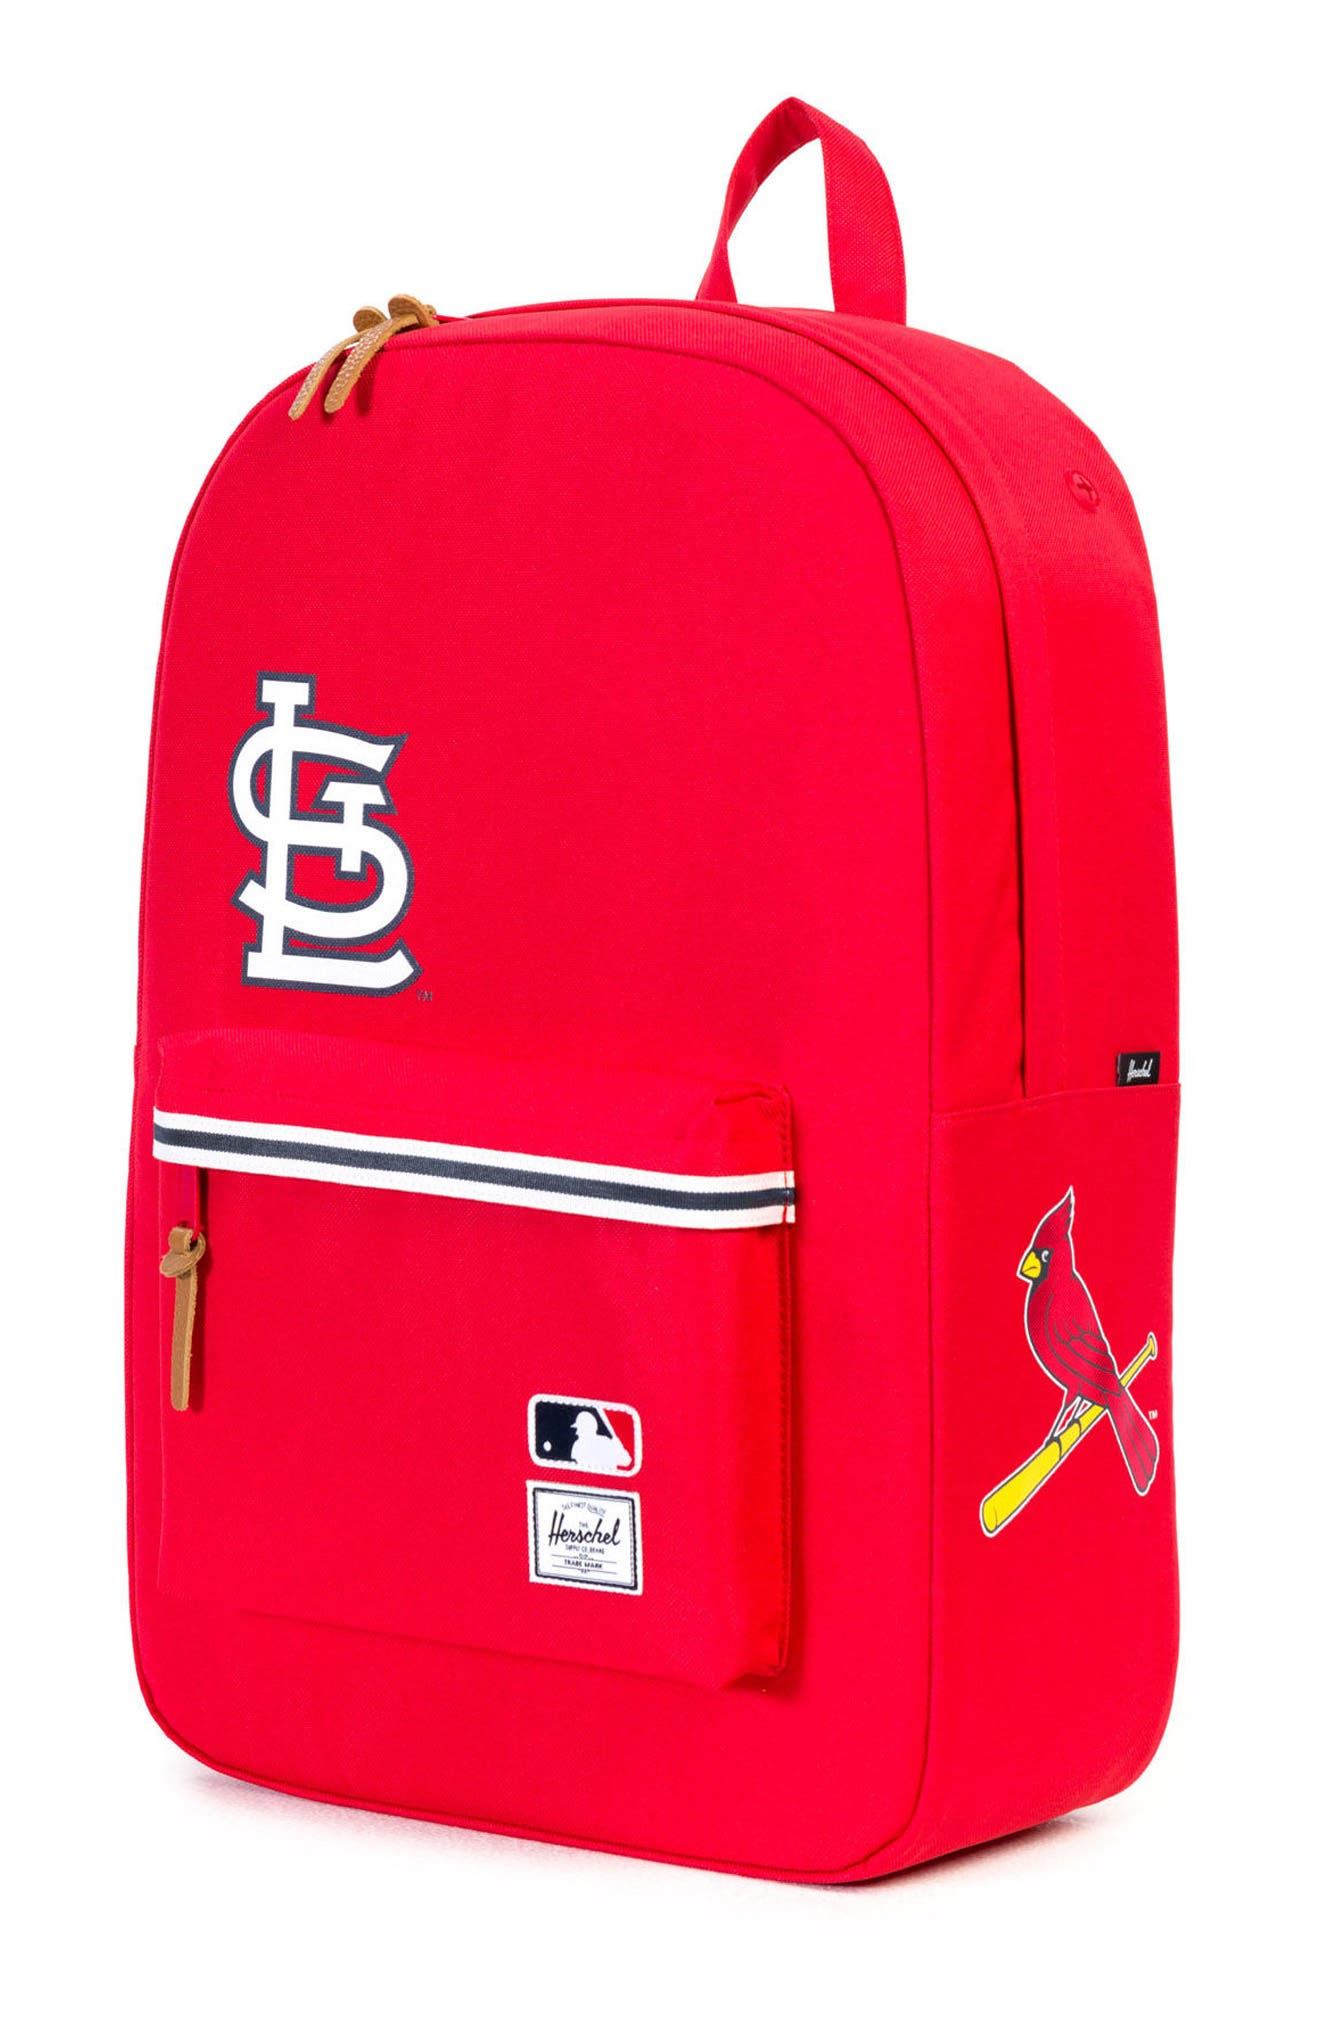 Heritage St. Louis Cardinals Backpack,                             Alternate thumbnail 4, color,                             648